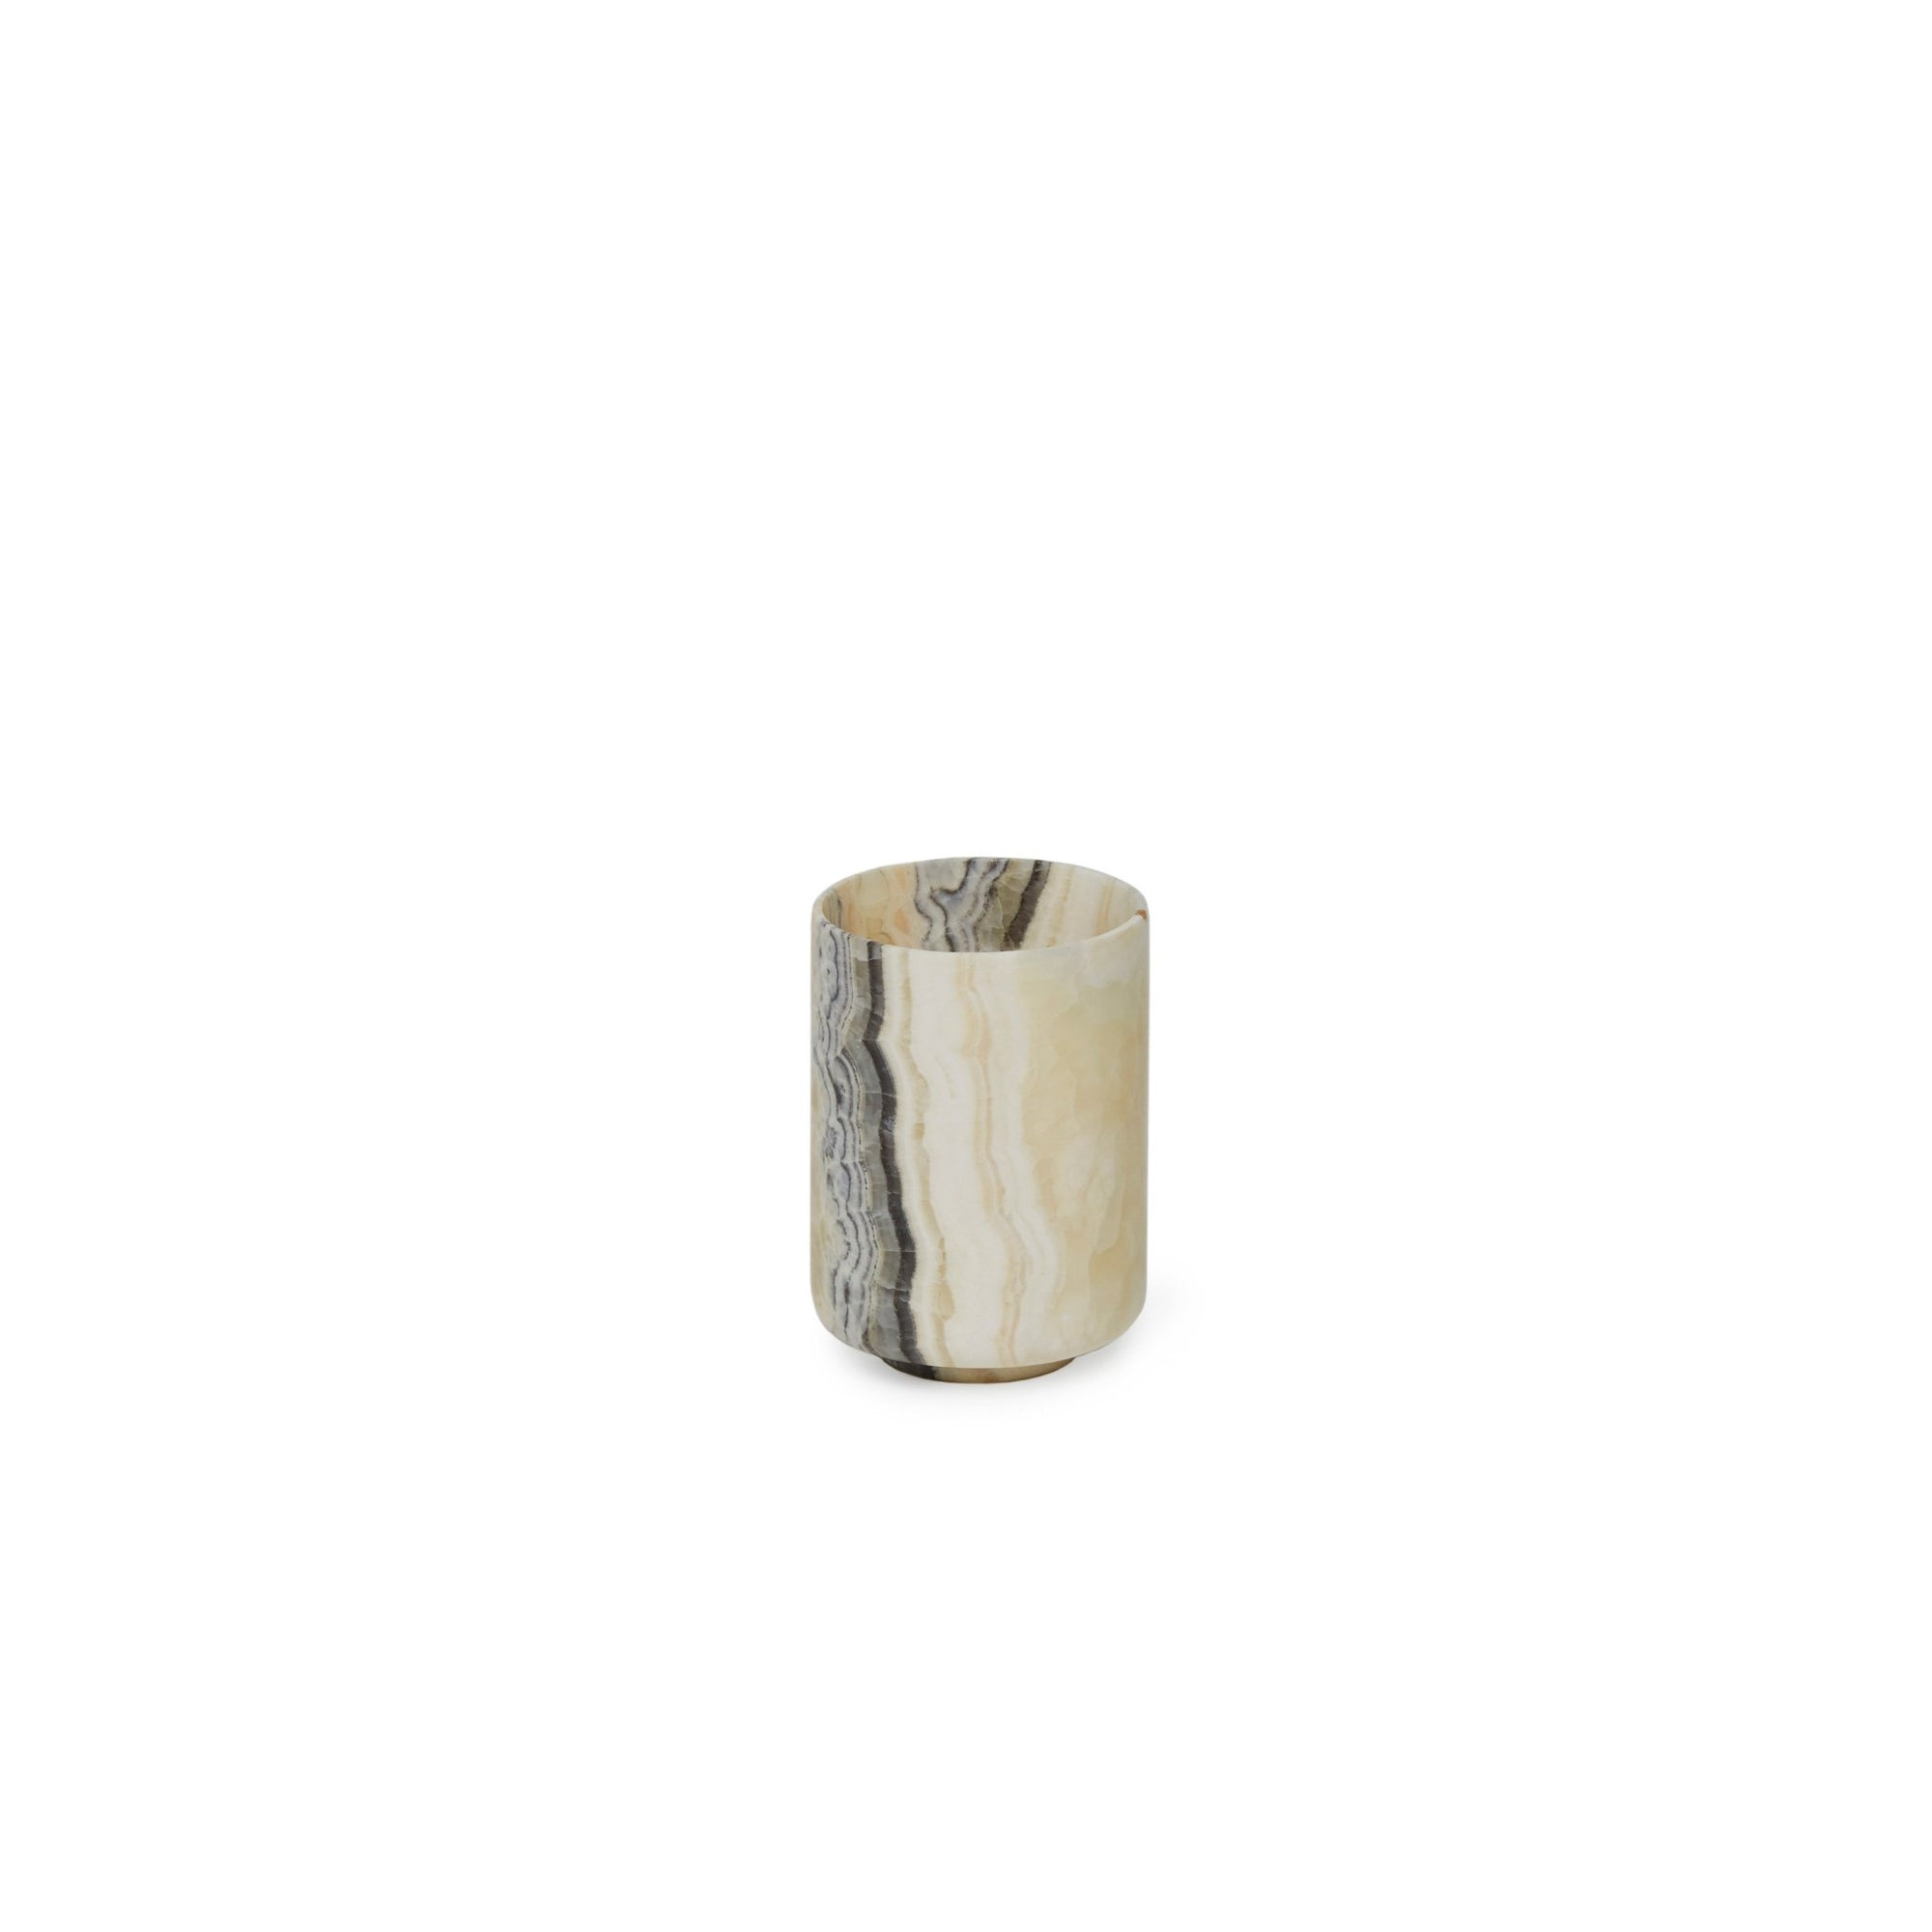 3351-BROX Sherle Wagner International Stone Tumbler in Brown Onyx